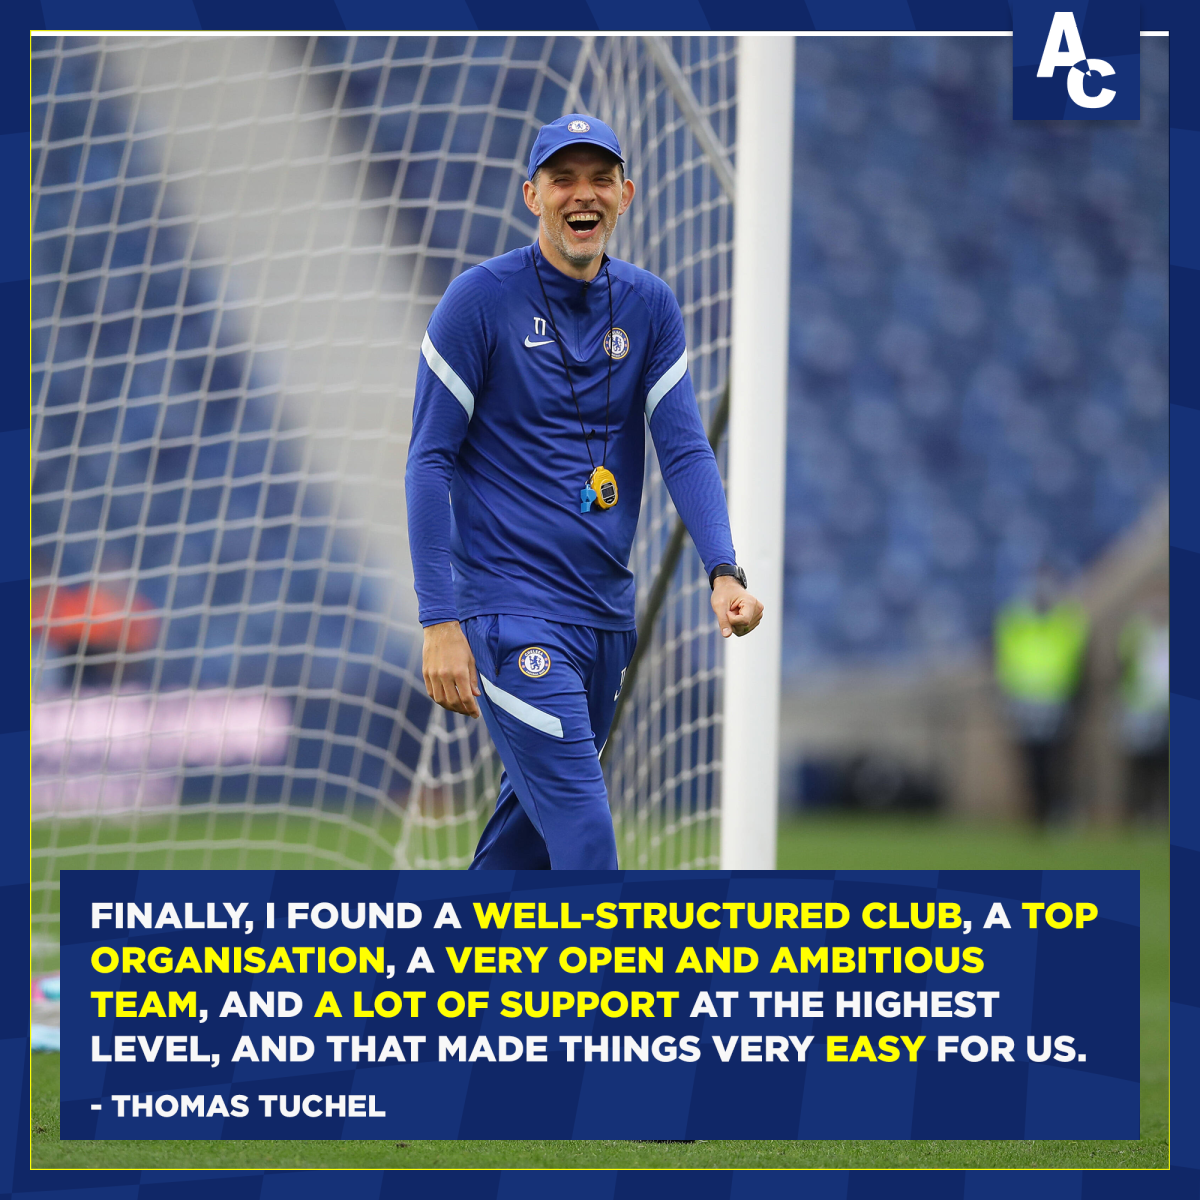 Chelsea boss Thomas Tuchel has answered several questions ahead of the UEFA  Super Cup clash with Villarreal including why he has been so successful at  Stamford Bridge so far. - Sports Illustrated